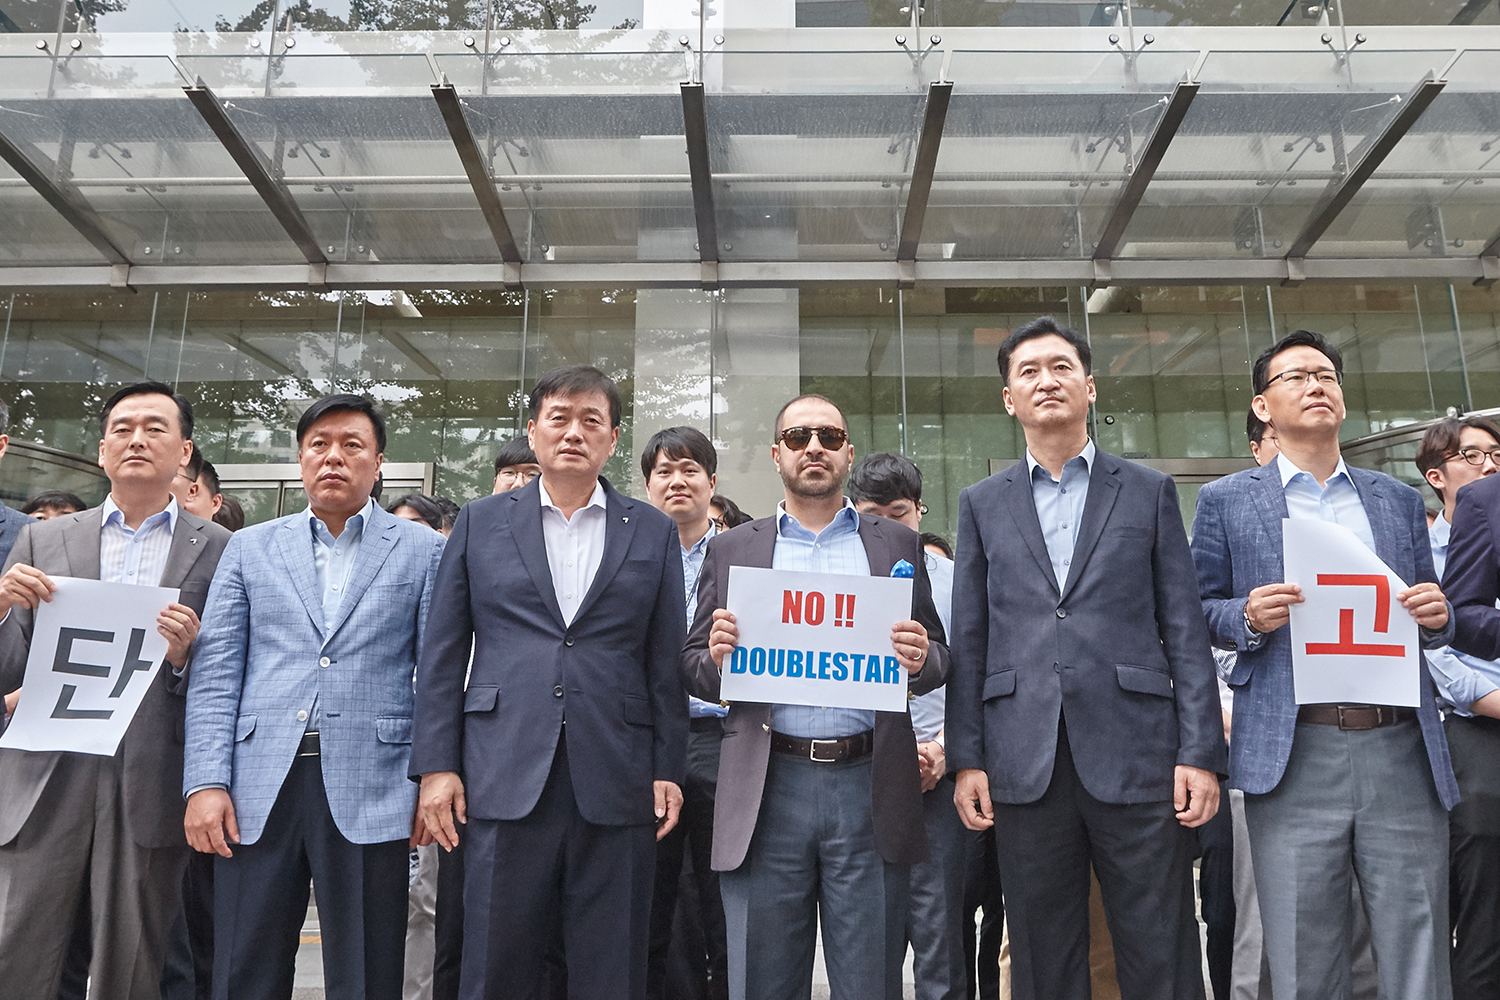 Kumho Tire's sales force and overseas buyers they held a silent protest against the problematic sale of the company to Doublestar in front of Kumho Asiana Main Building in Gwanghwamun, Seoul on August 8.